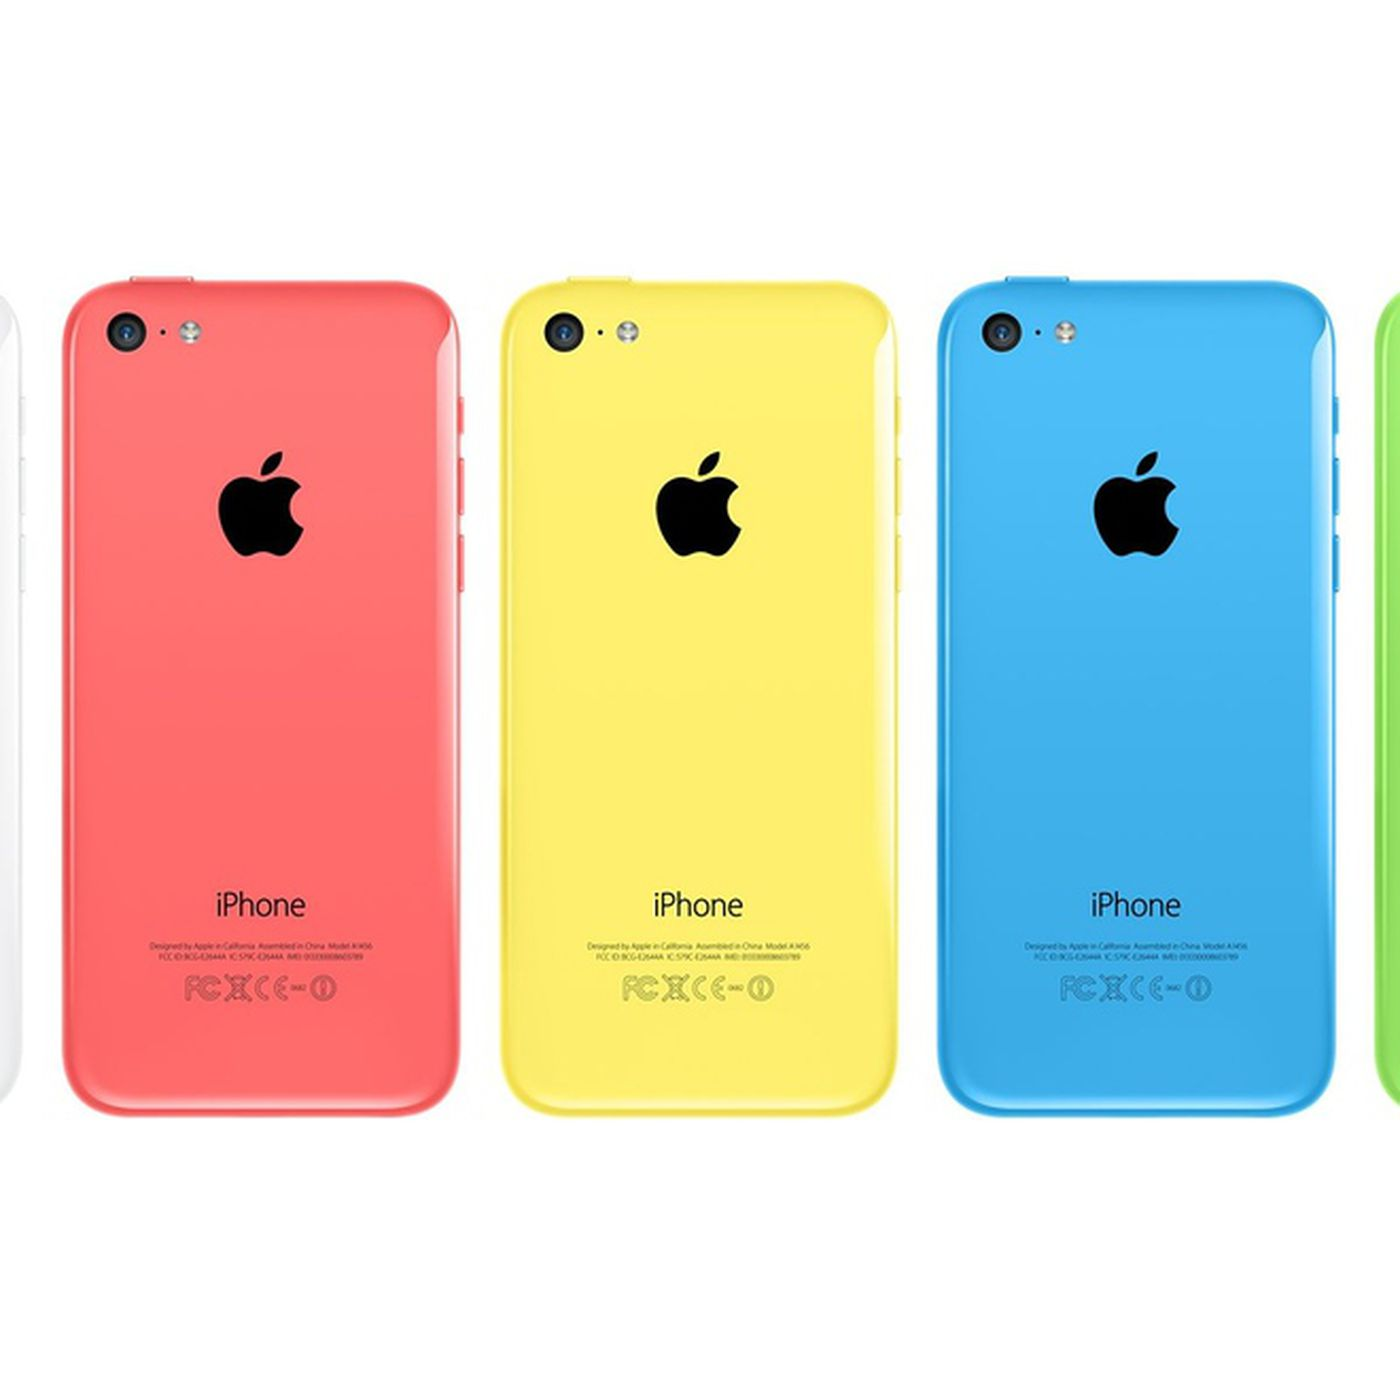 Apple's stock drops as investors worry about 'expensive' iPhone 5c ...